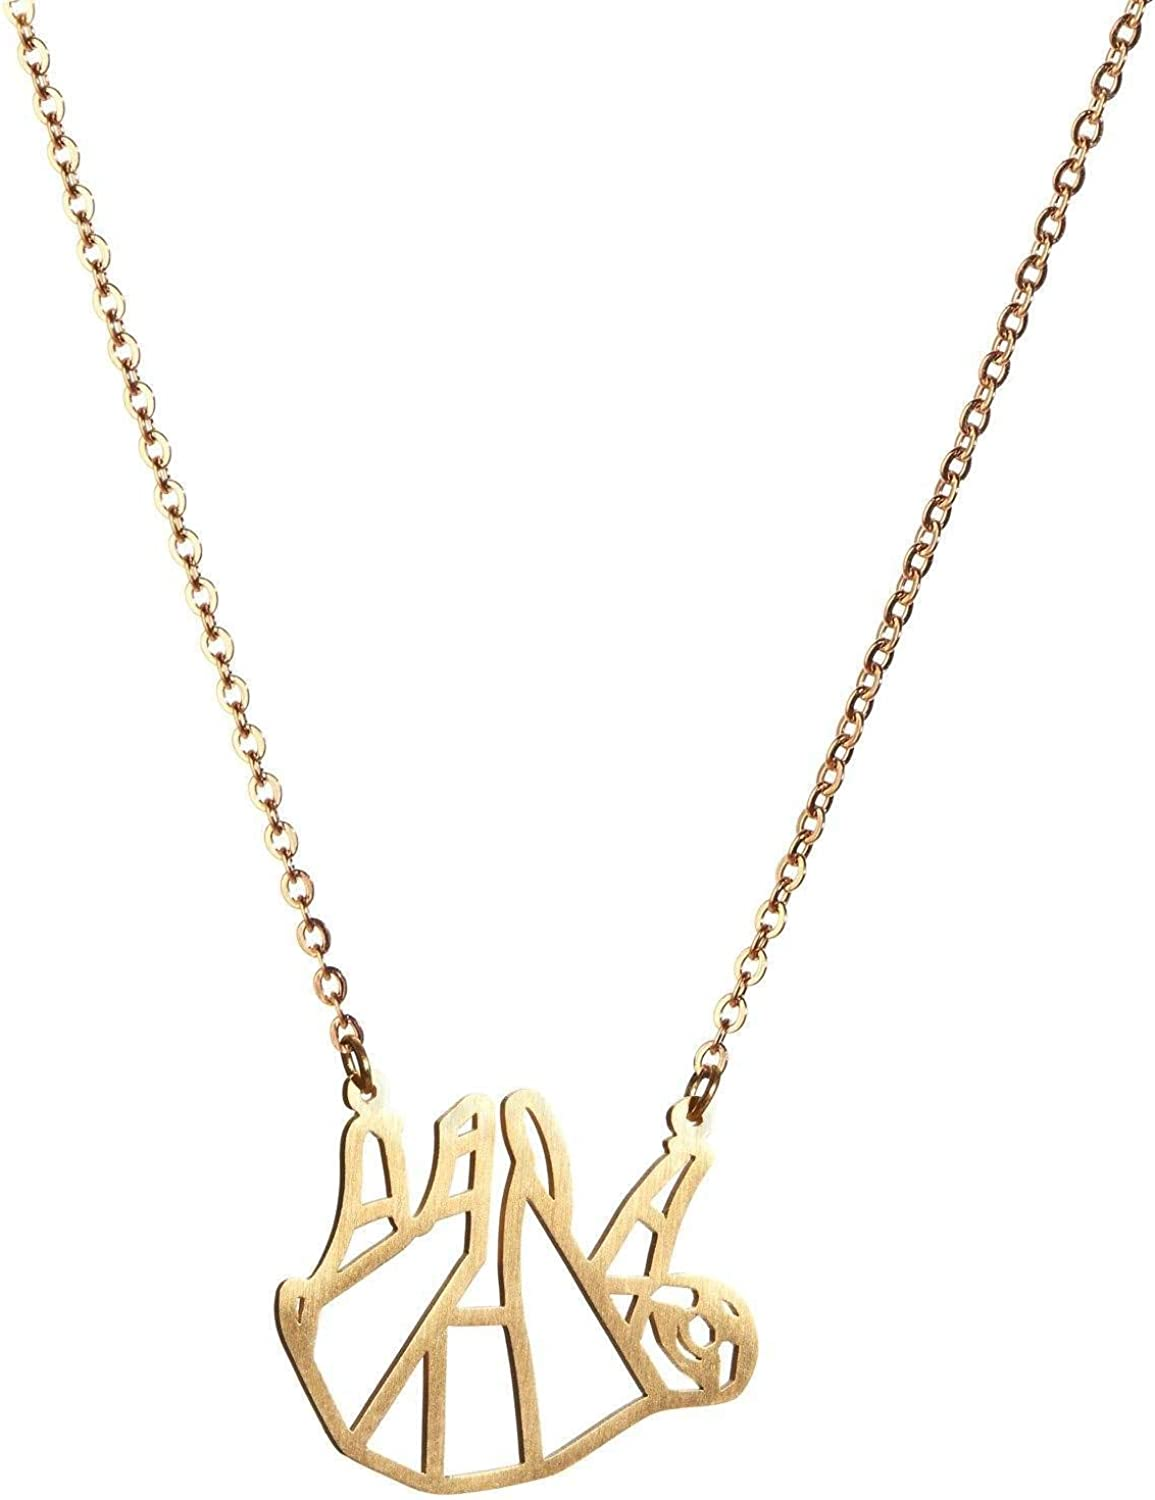 La Menagerie Sloth Gold Origami Jewellery - Gold Geometric Chain Necklace – 18 Karat Plated Gold Necklace for Women & Girls – Stylish Sloth Pendant Necklace